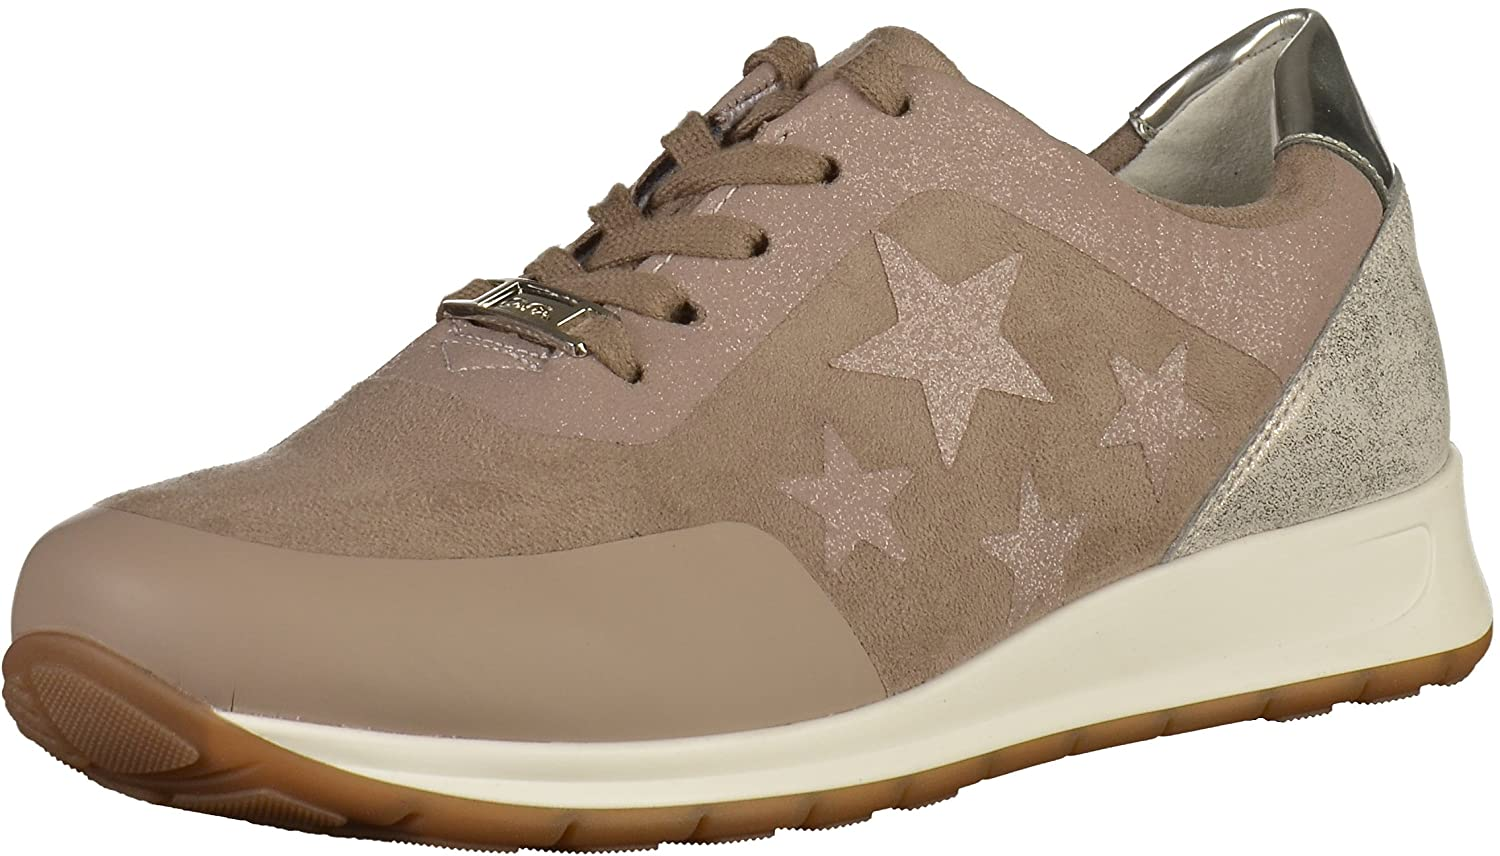 ara Taupe 12-44563 G 12-44563 Femmes Baskets Baskets Taupe dd0e30d - reprogrammed.space